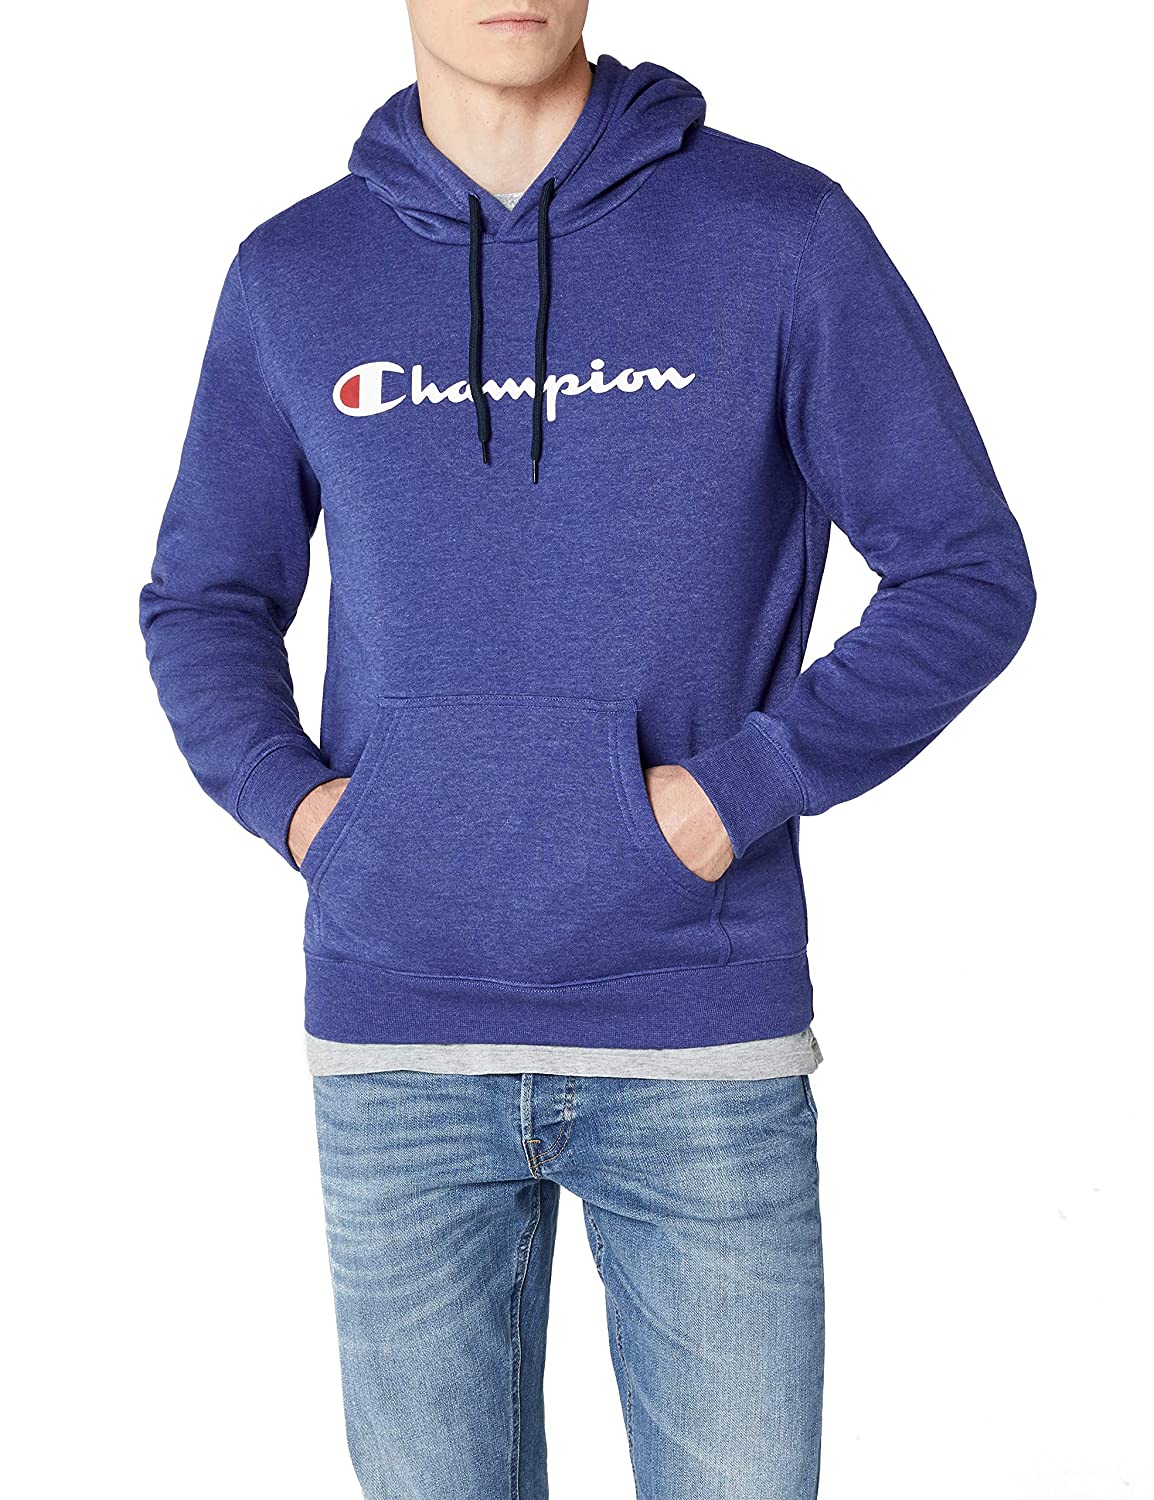 TALLA S. Champion Hooded Sweatshirt-Institutionals Sudadera con Capucha para Hombre